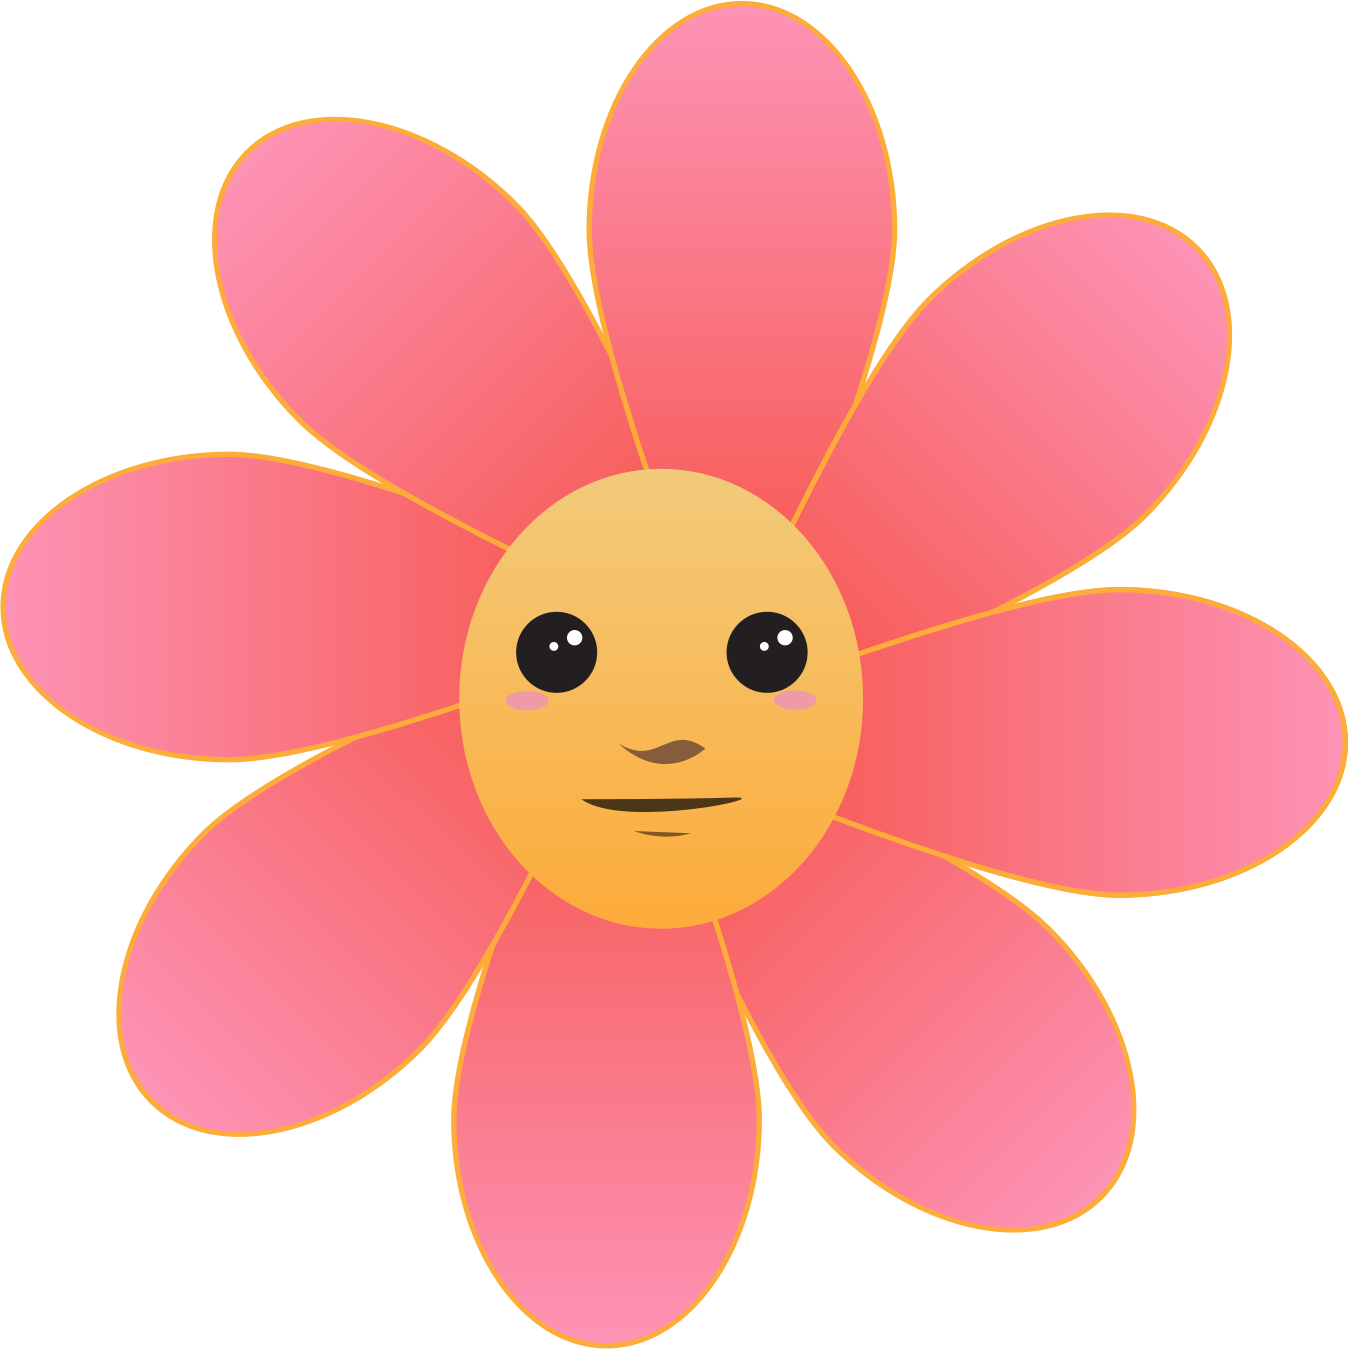 Face clipart flower. Big image png